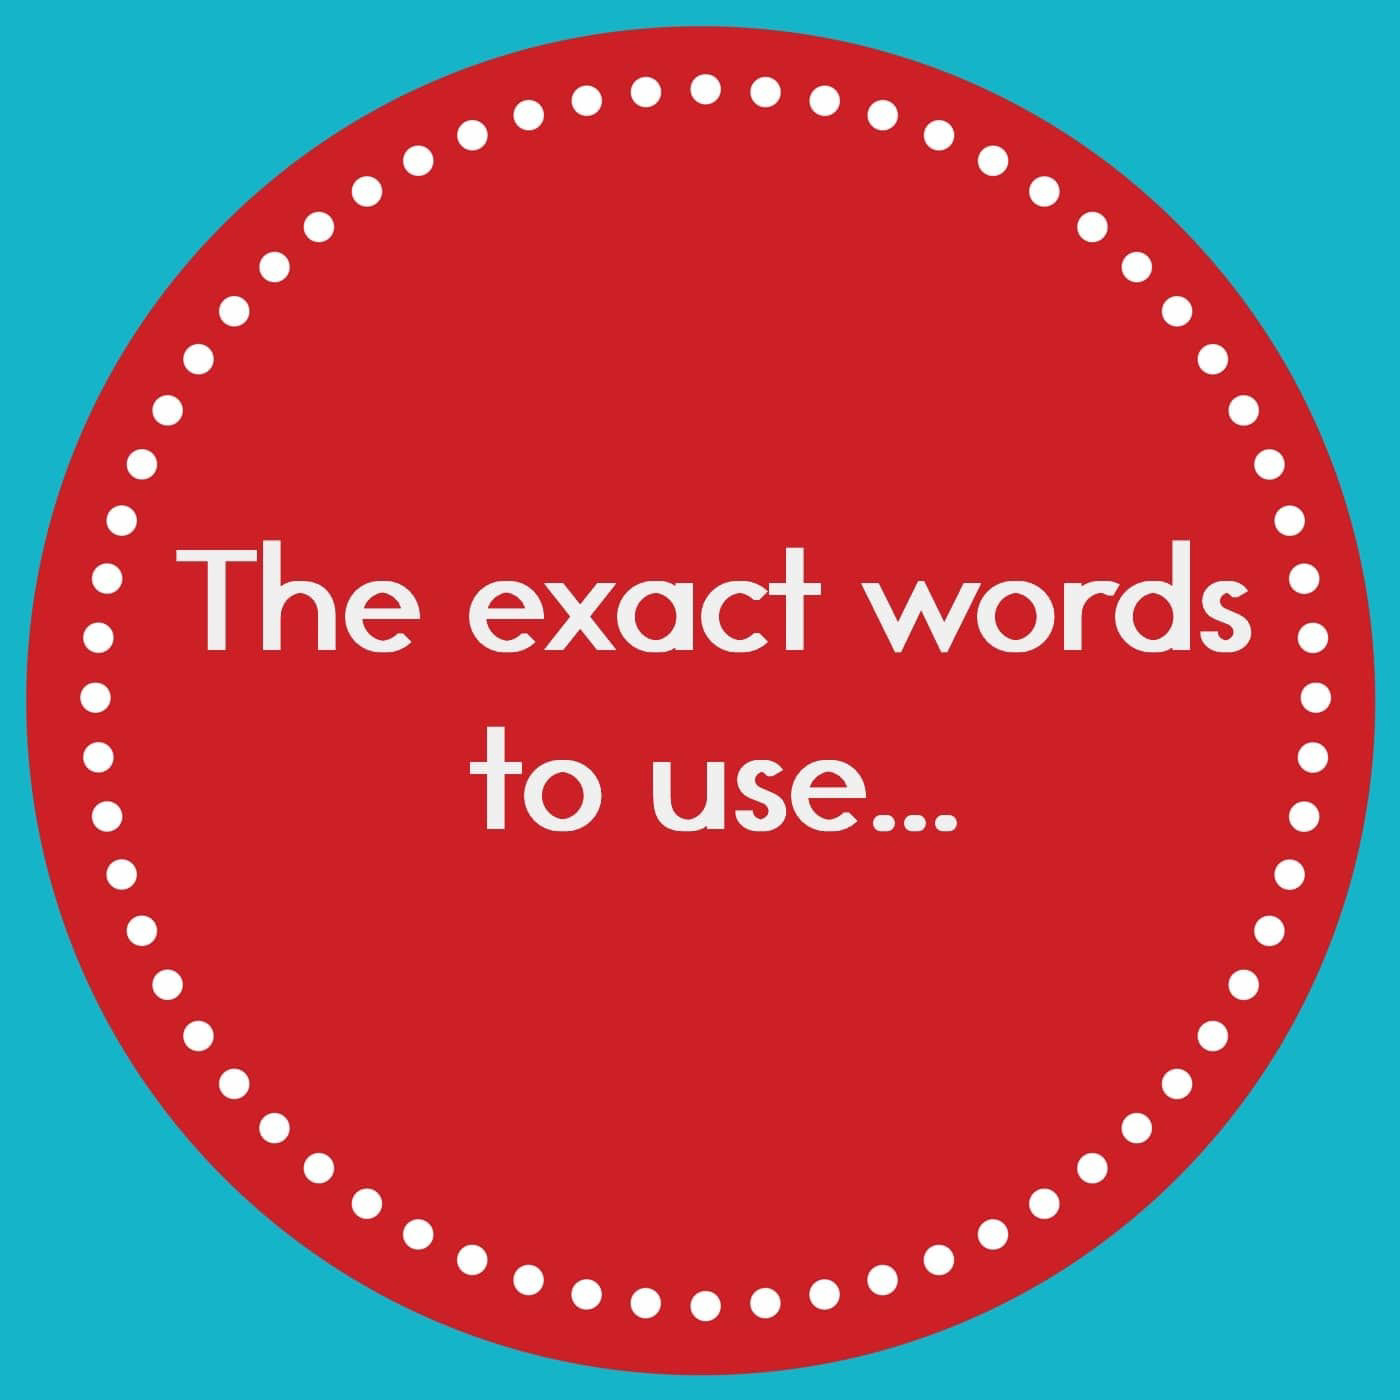 Episode 3: The exact words to use